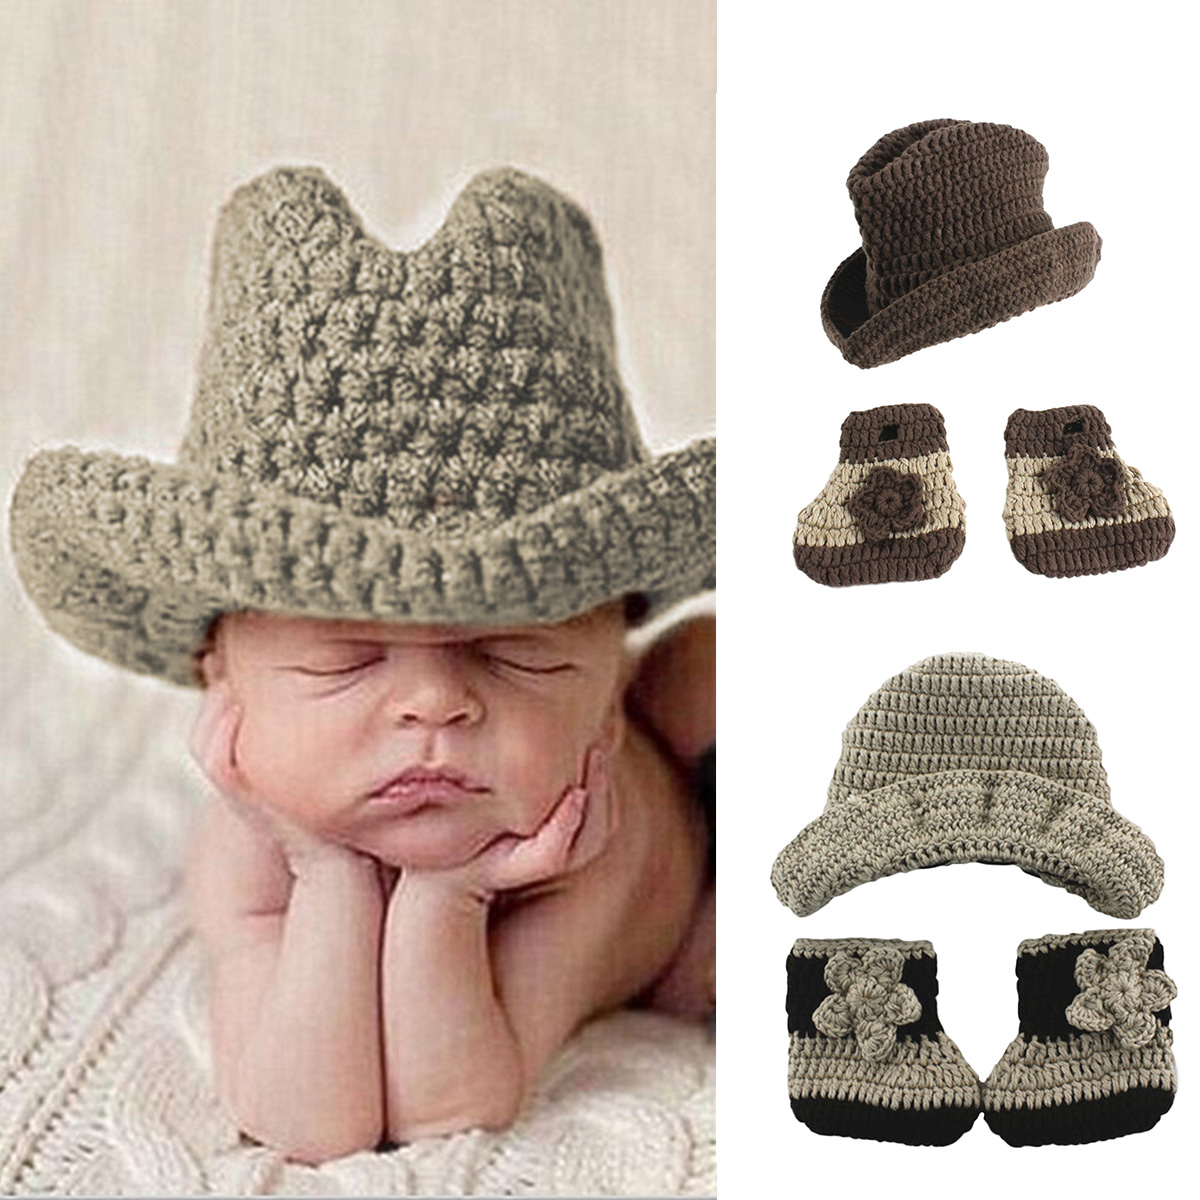 New Baby Photo Shoot Newborn Photography Props Baby Costume Infant Baby Knitting Fotografia Crochet Outfits Accessories